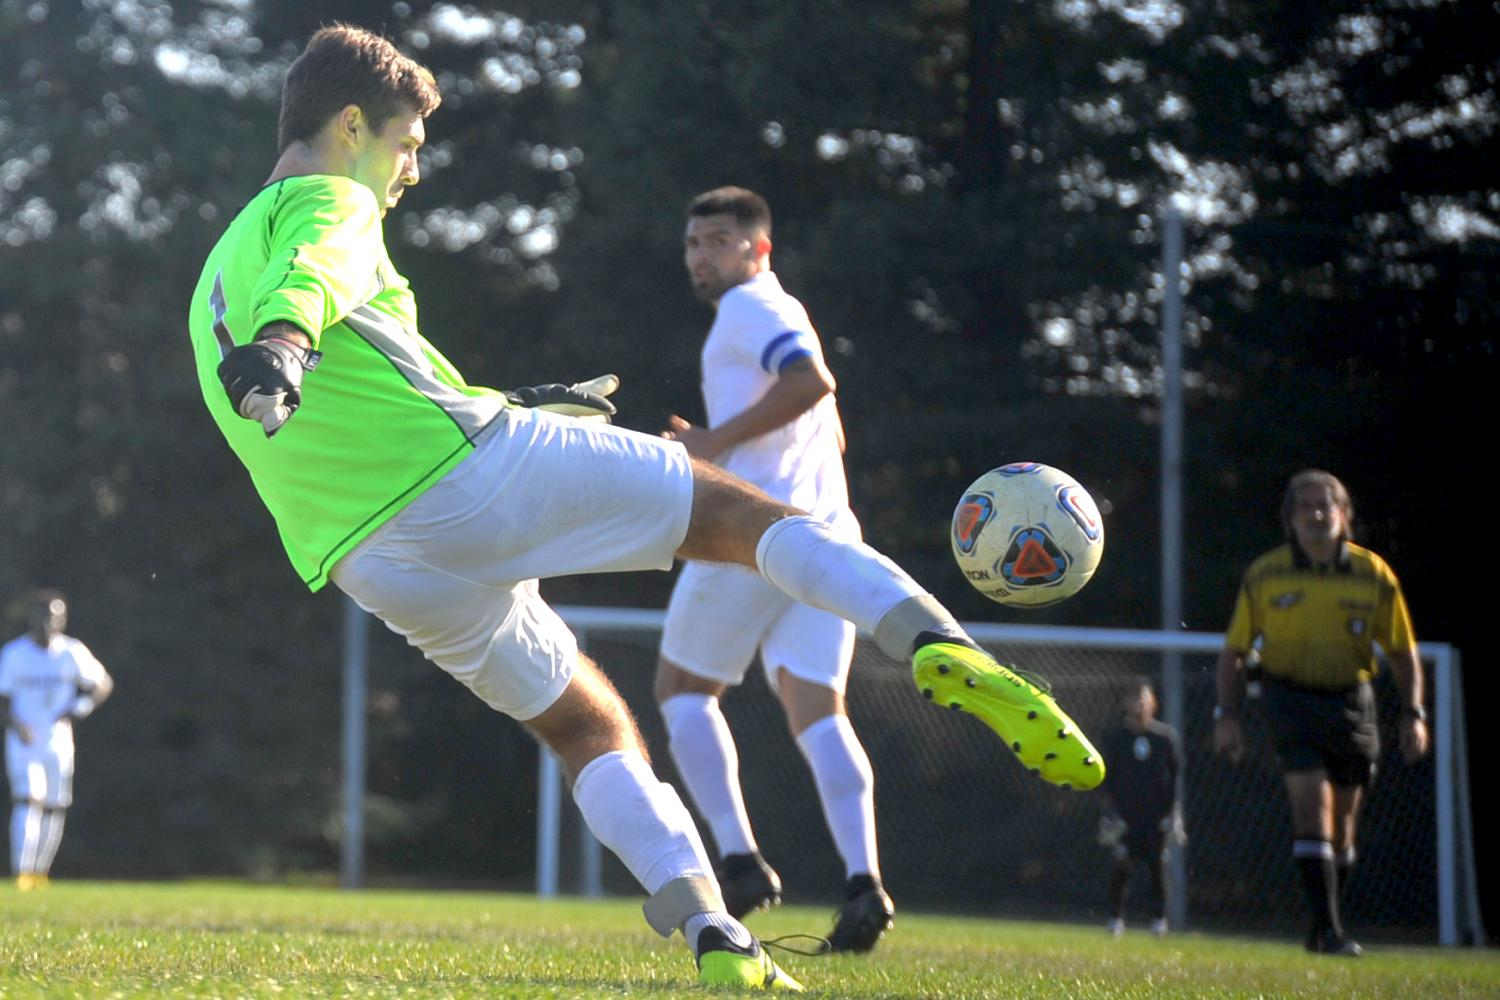 Mariner goalkeeper Colin Sneddon clears the ball from his goal area. Sneddon was scored on 5 times during Contra Costa College's 5-1 win against College of Marin in the Soccer Field on Tuesday.